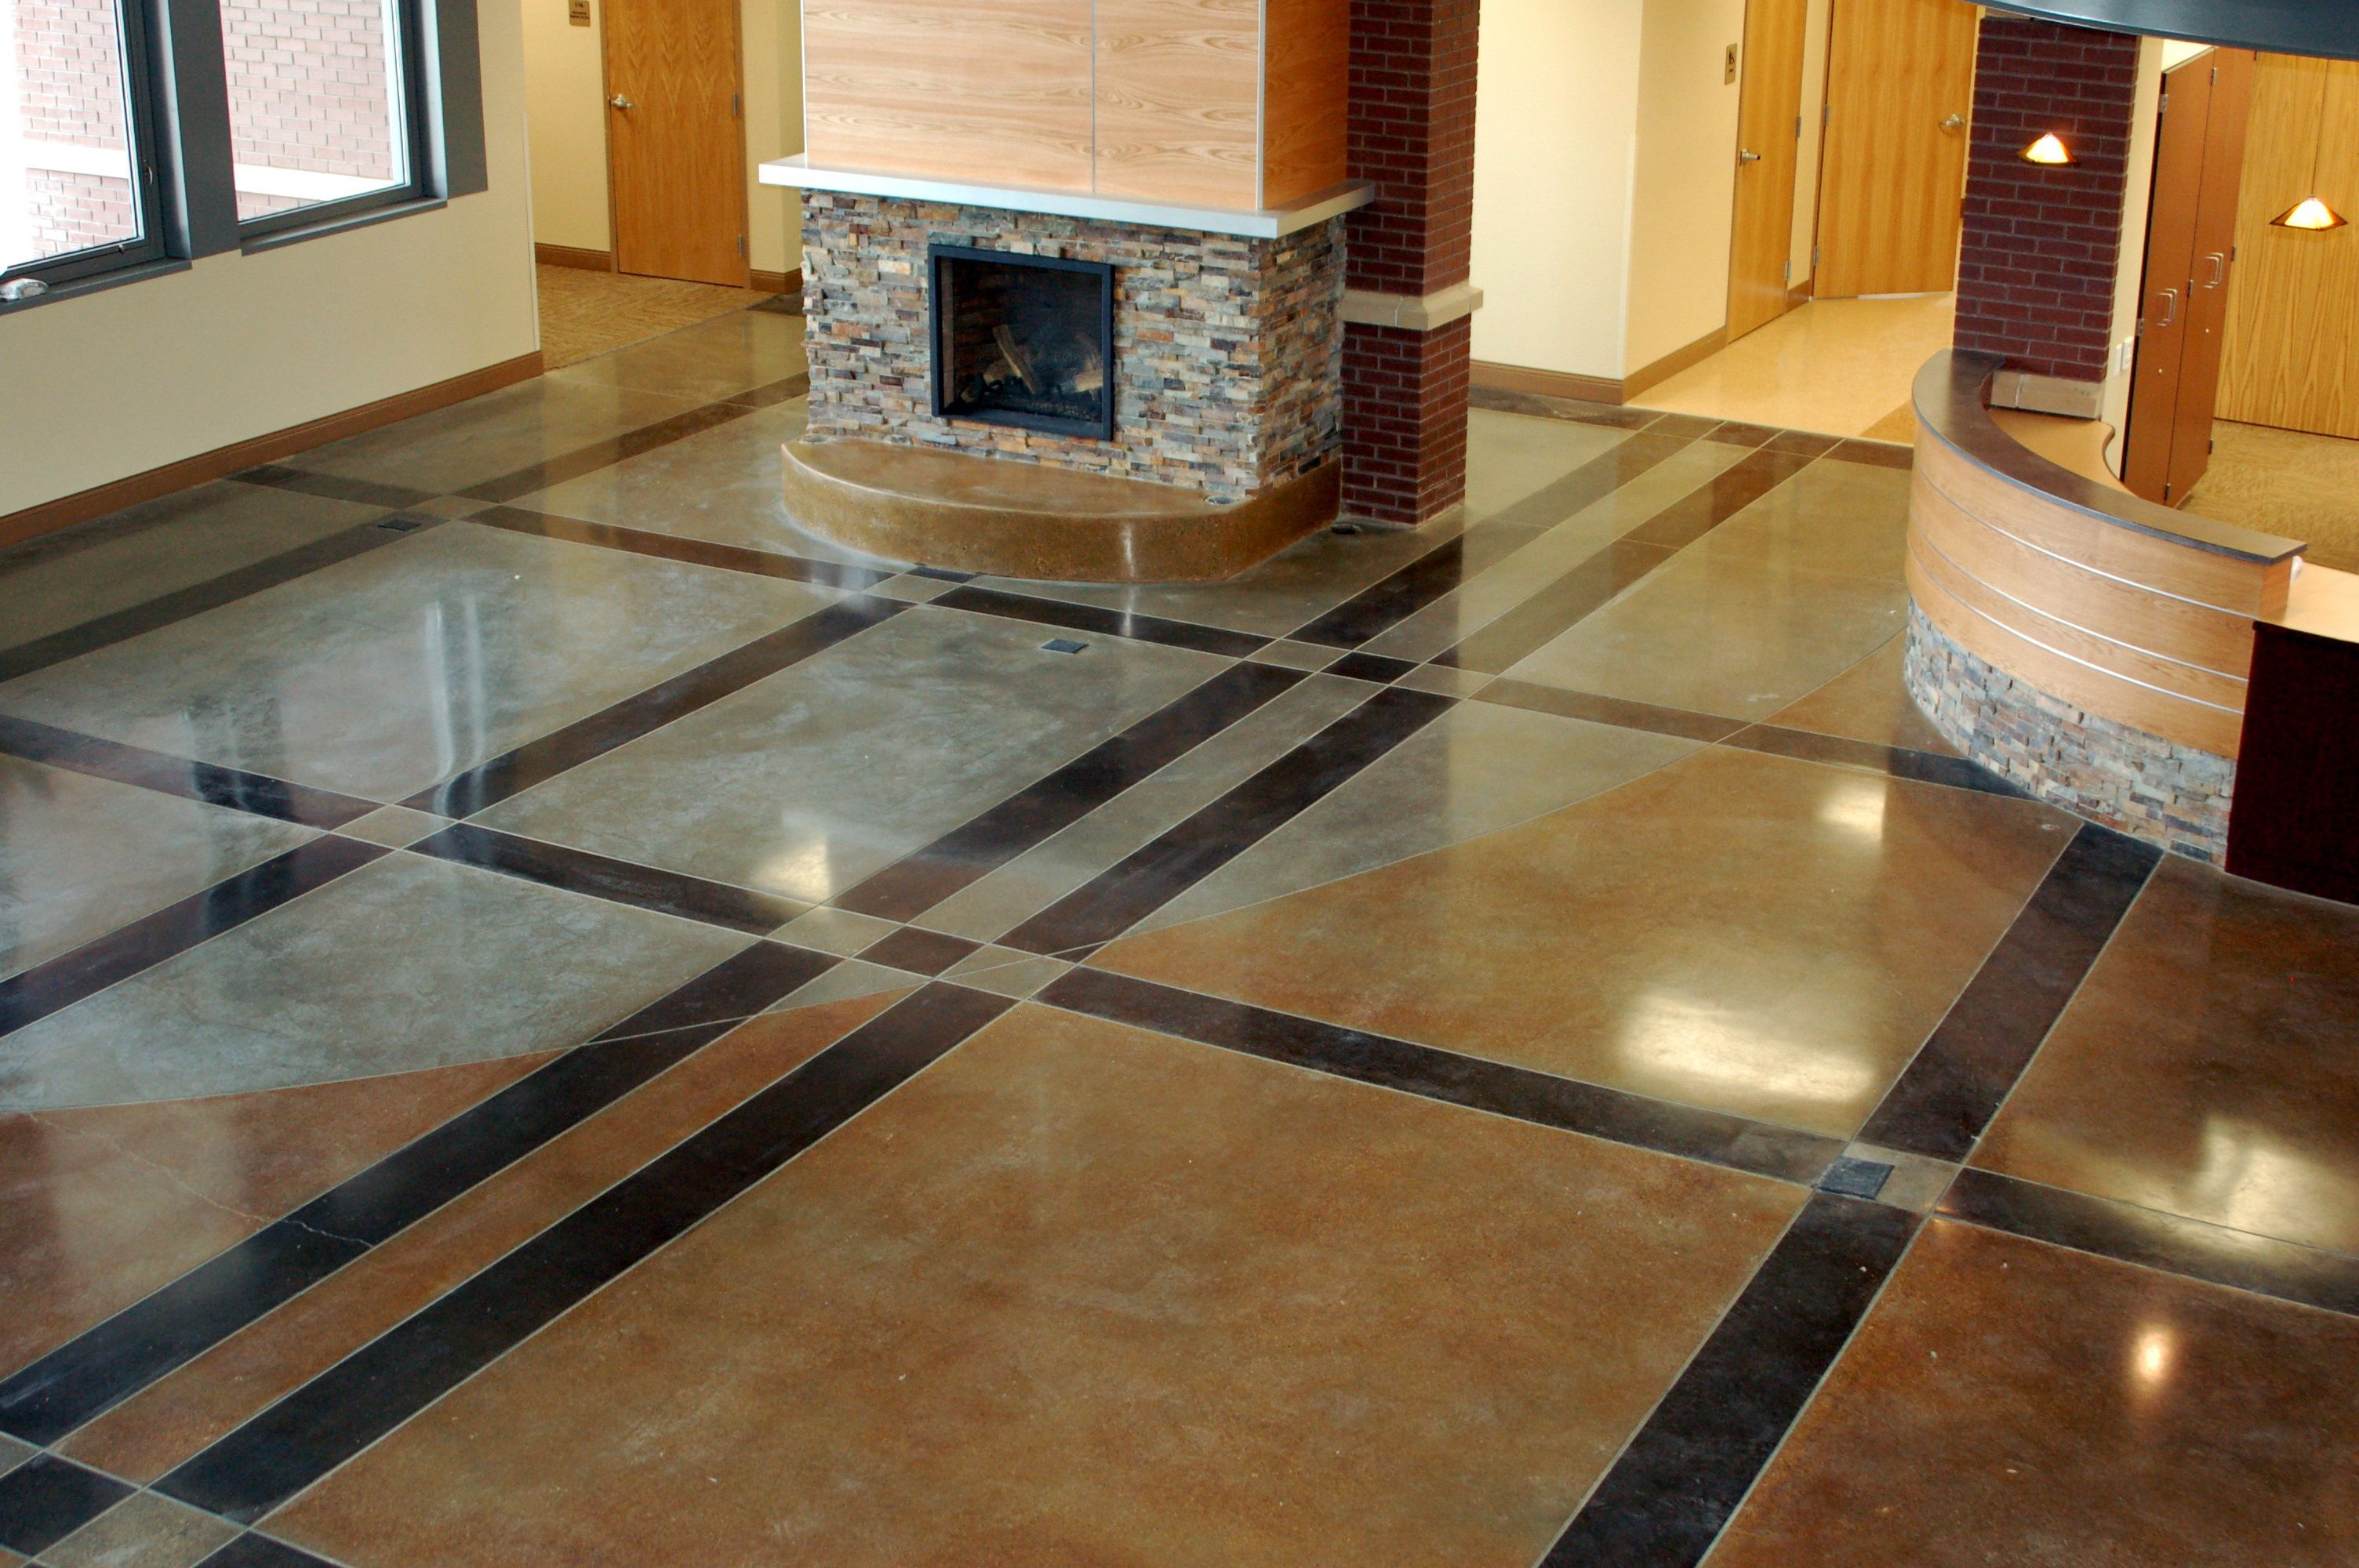 ozark design best concrete floor decorative flooring sealer floors custom of lake cement